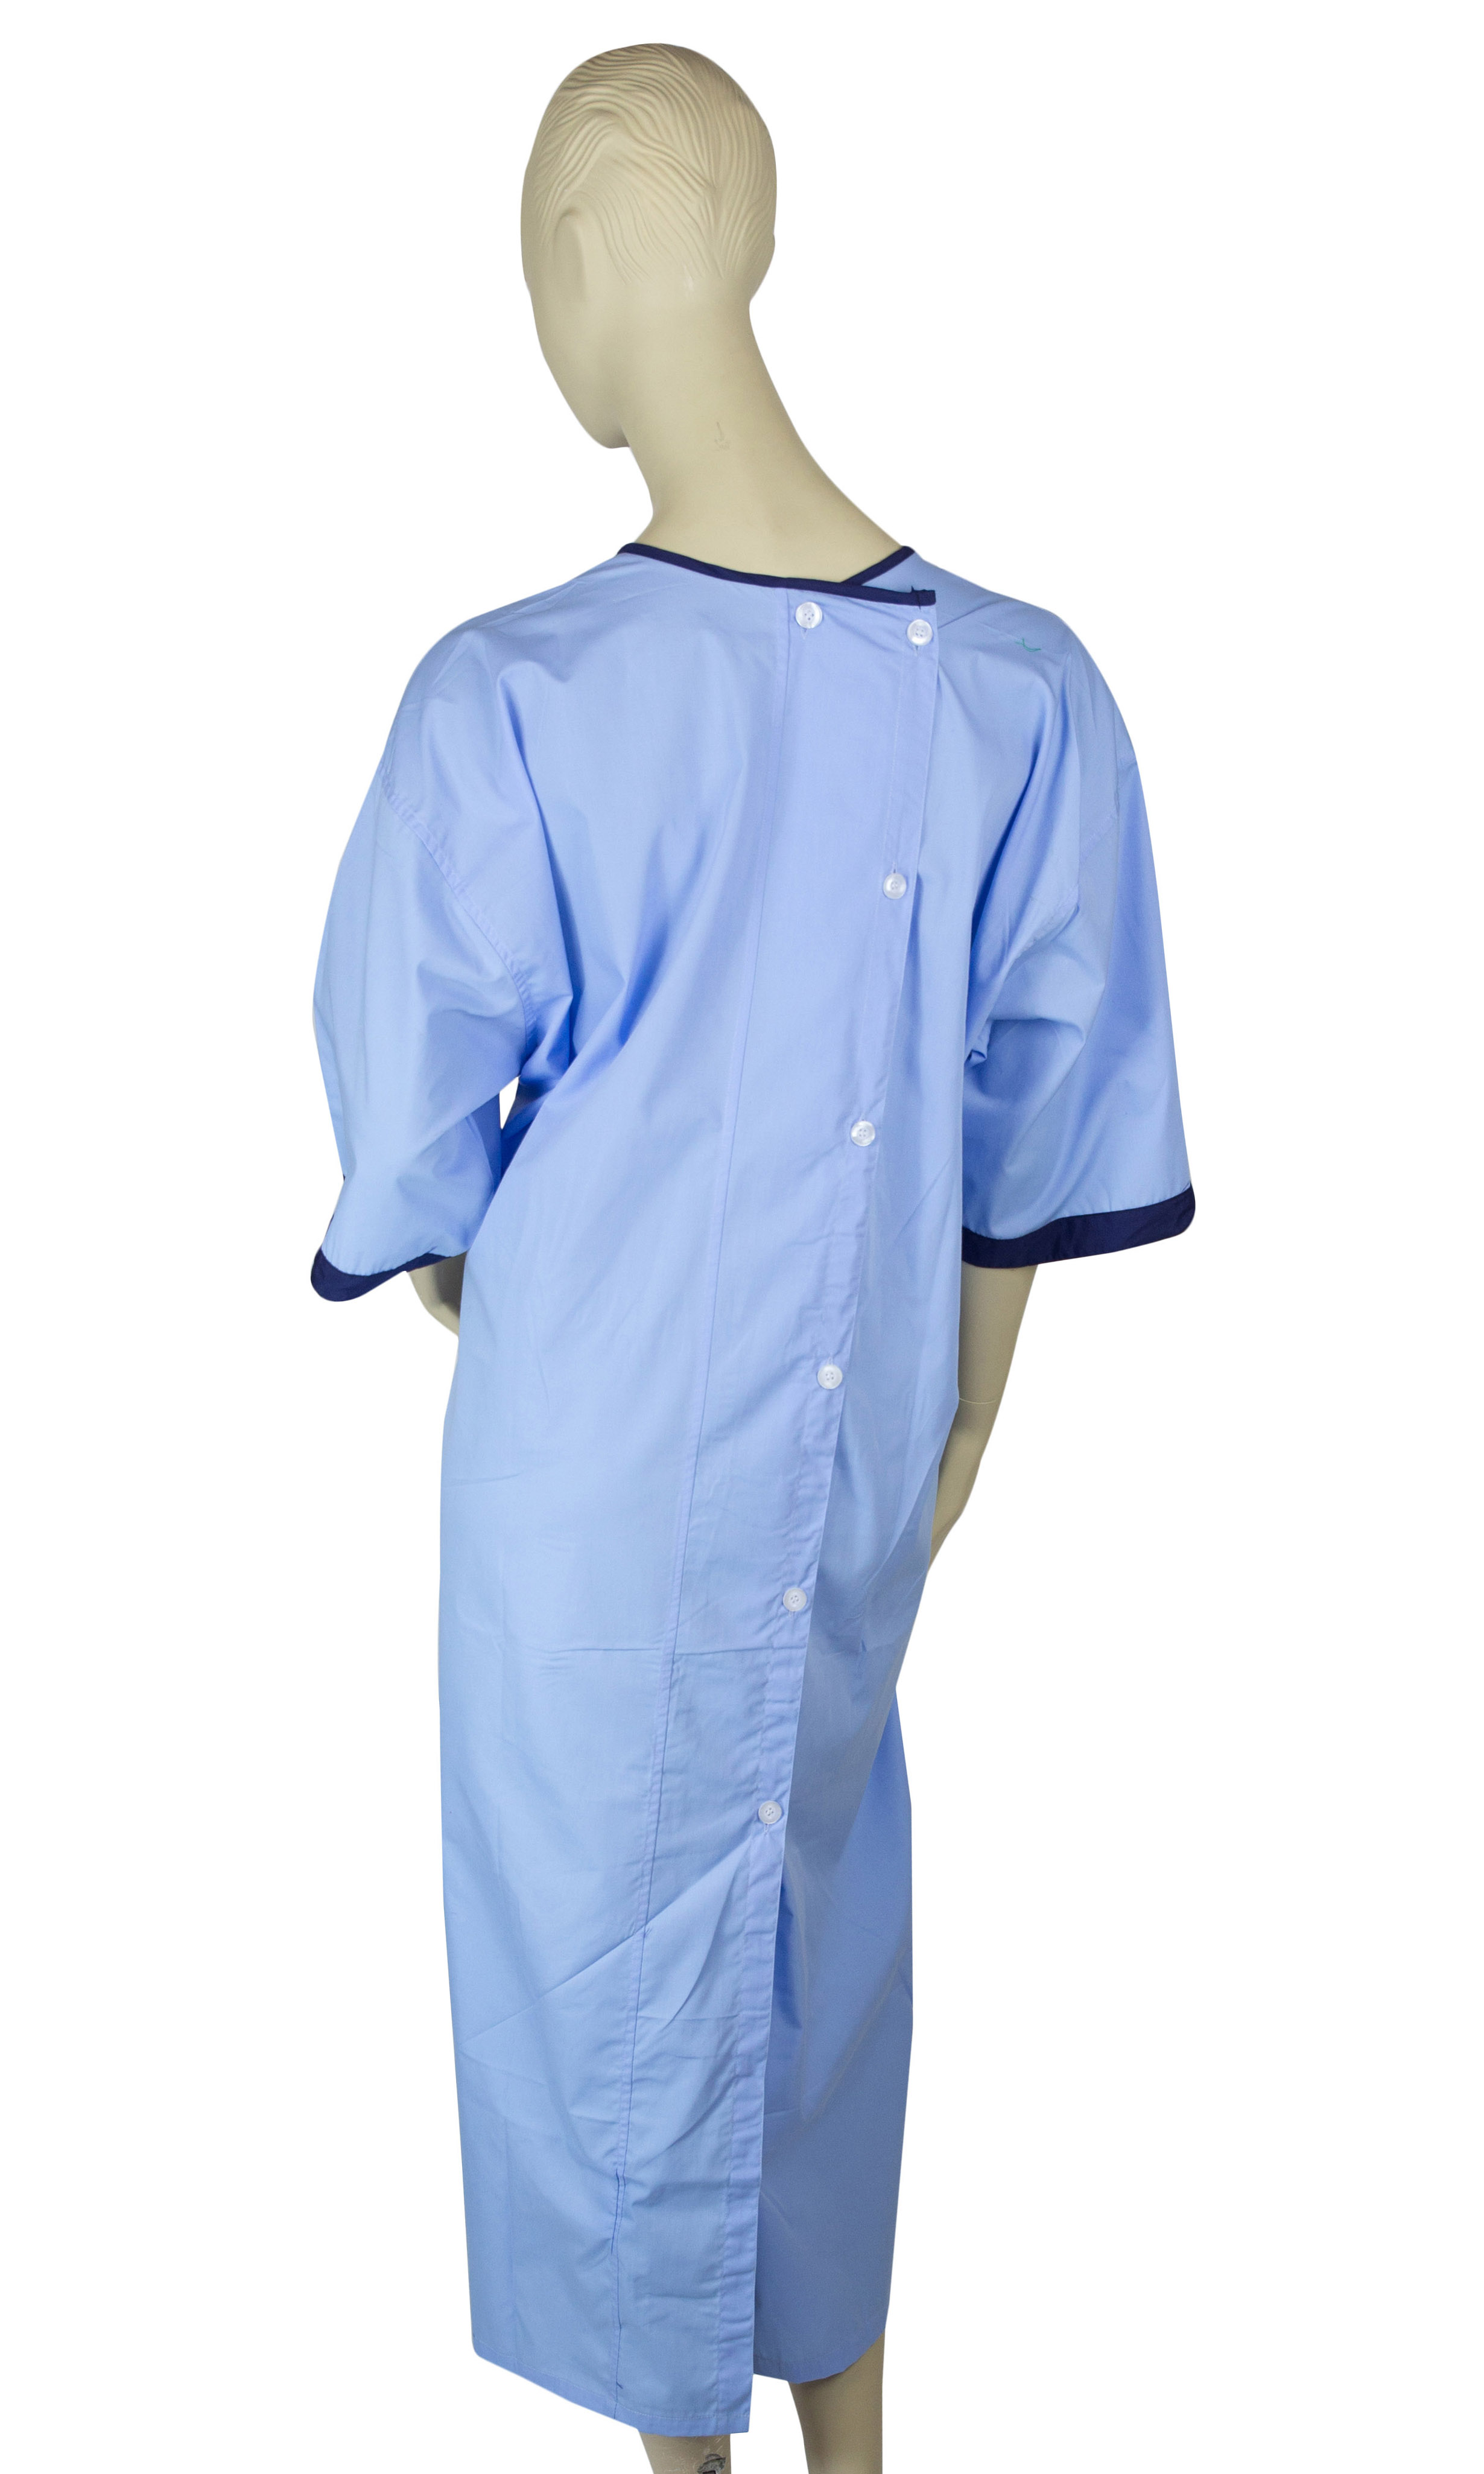 Exam Gown-B20